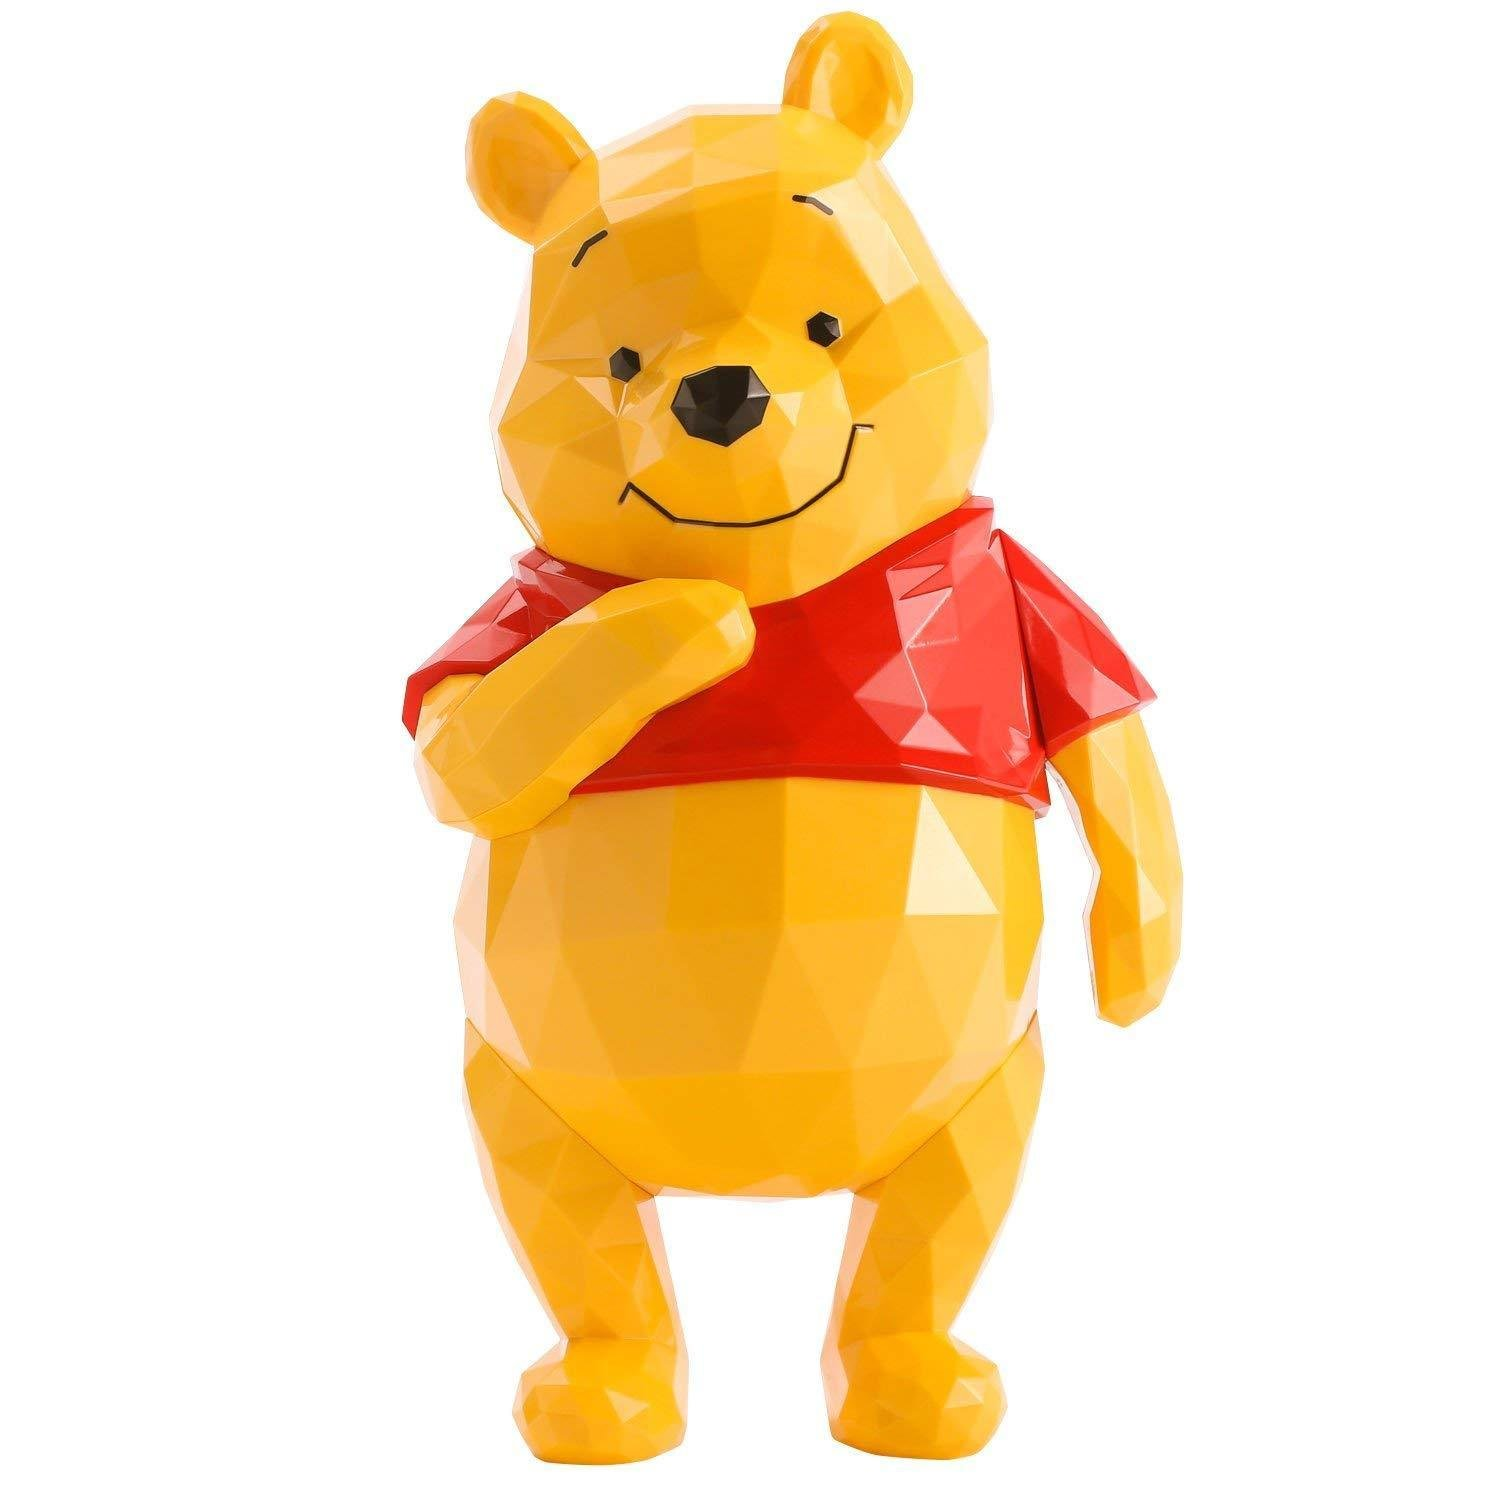 POLYGO Stitch Winnie the pooh Non Scale ABS Painted Figure Ornament Doll